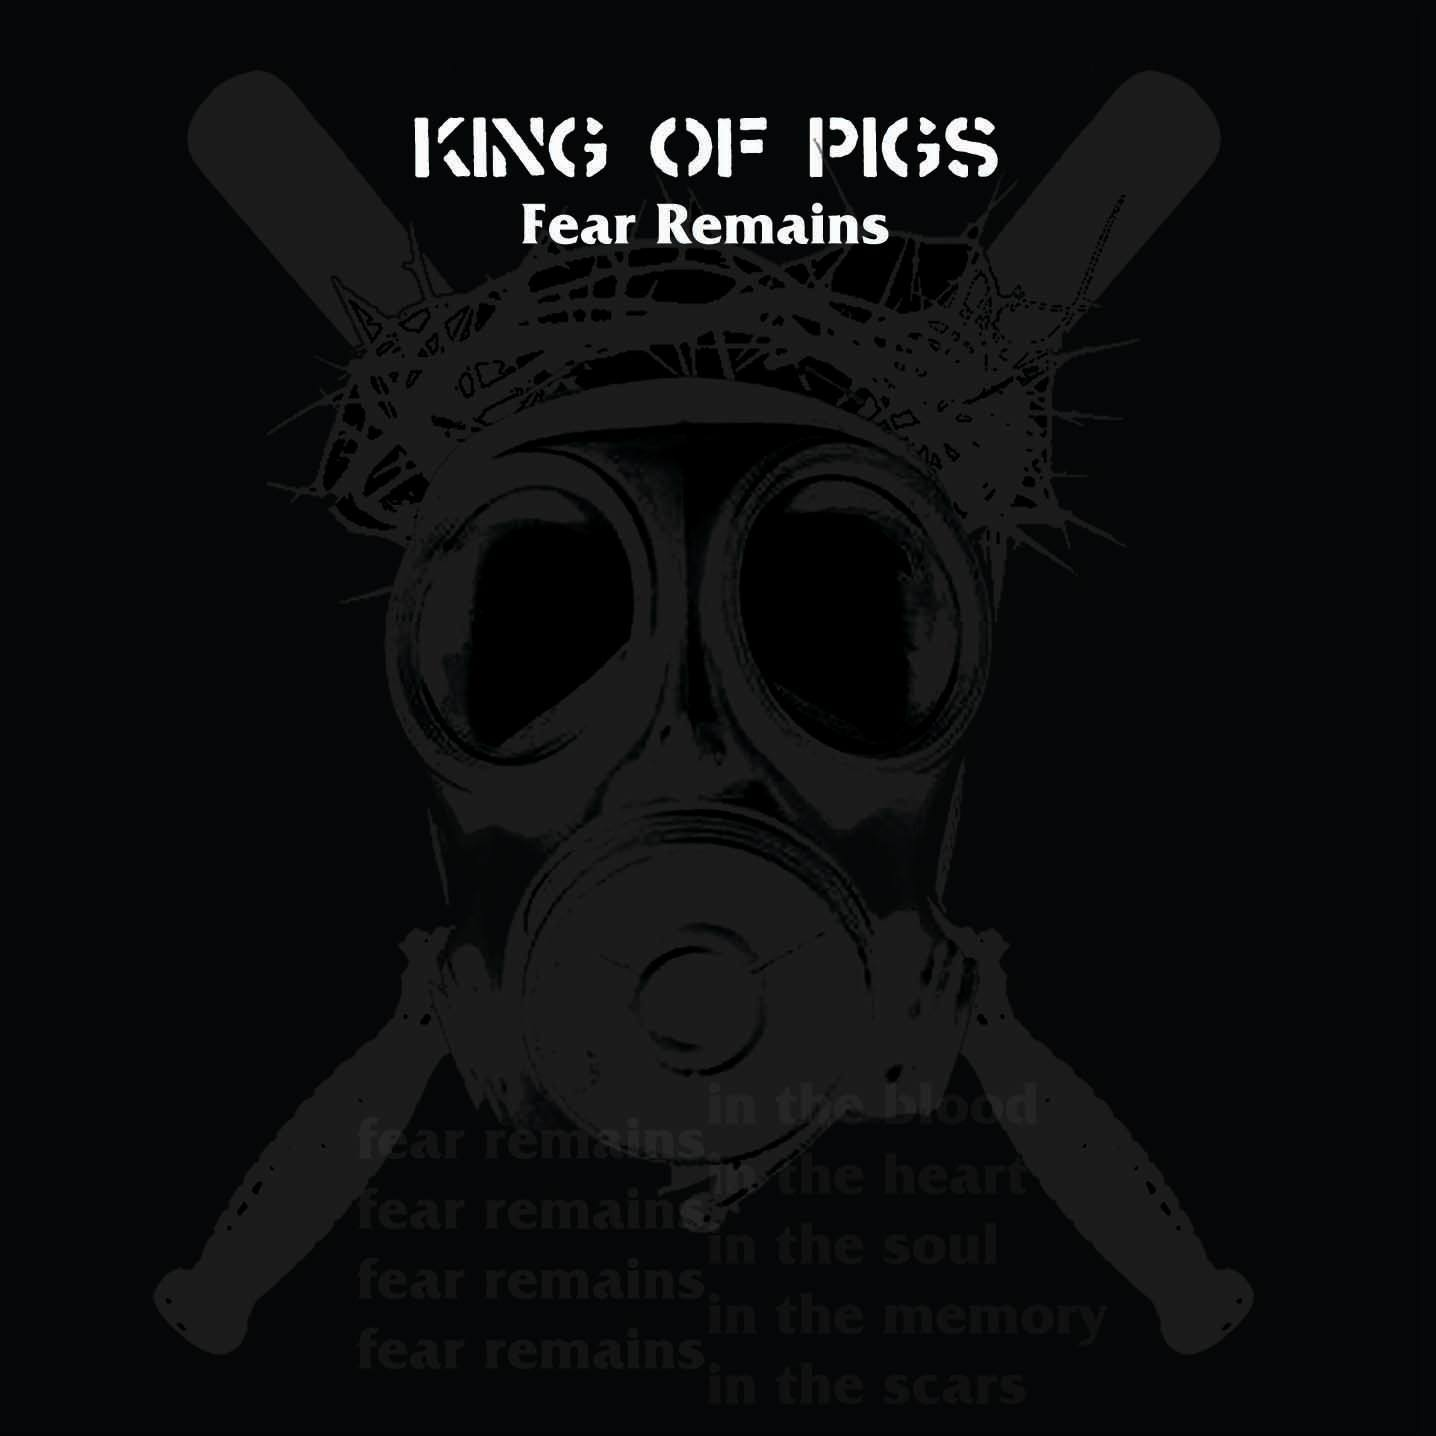 King of Pigs